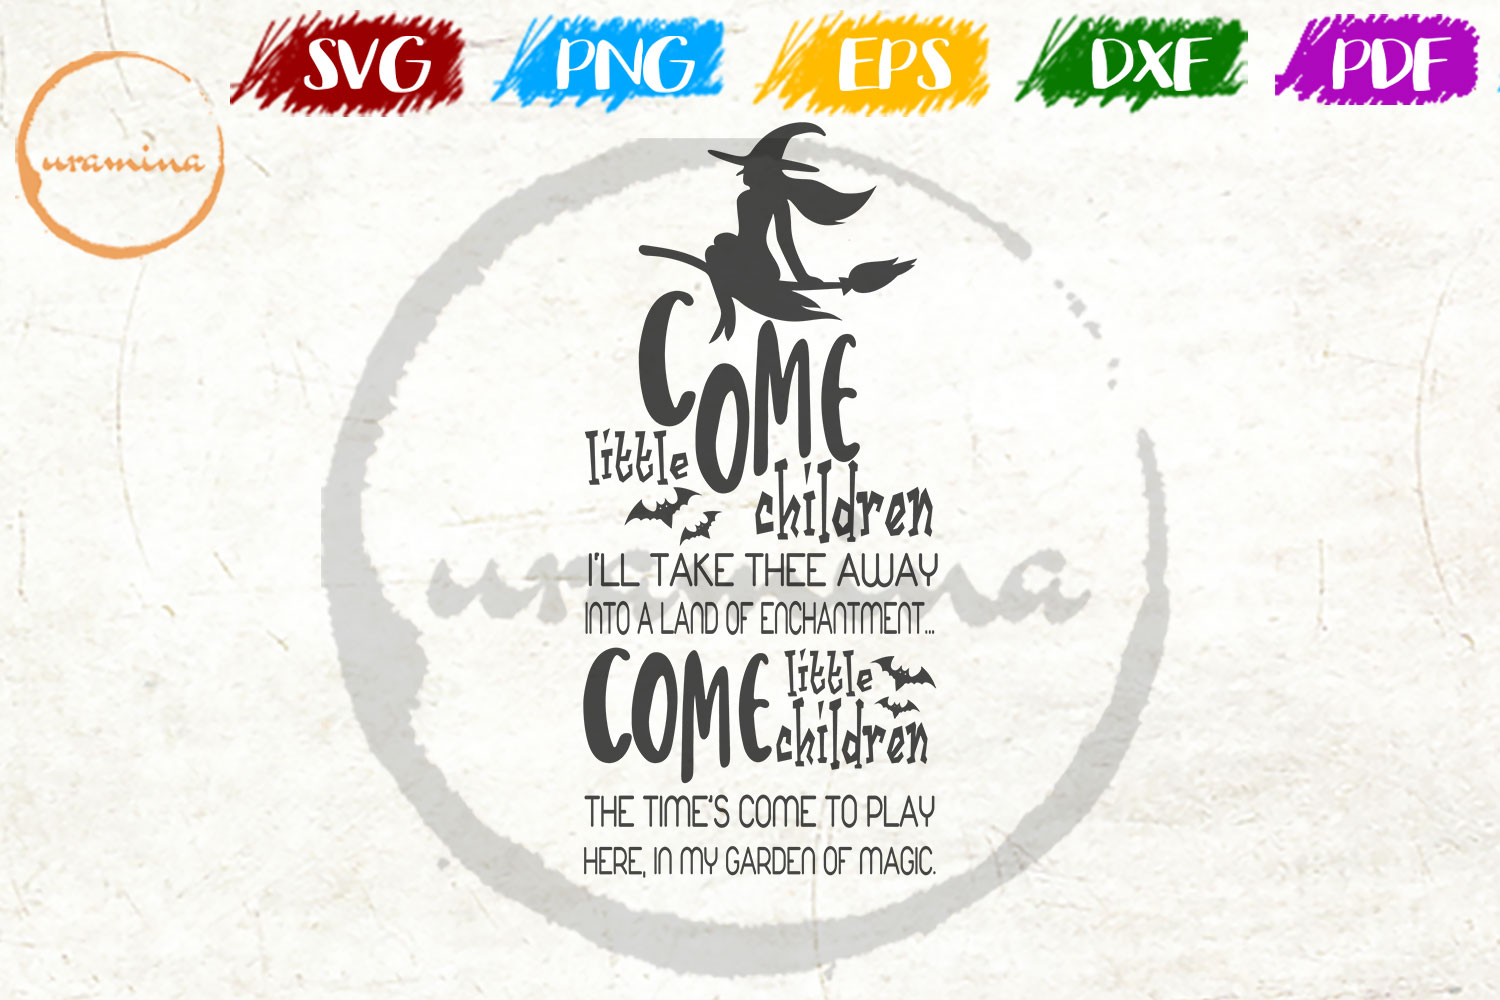 Download Free Come Little Children I Ll Take Thee Away Graphic By Uramina for Cricut Explore, Silhouette and other cutting machines.